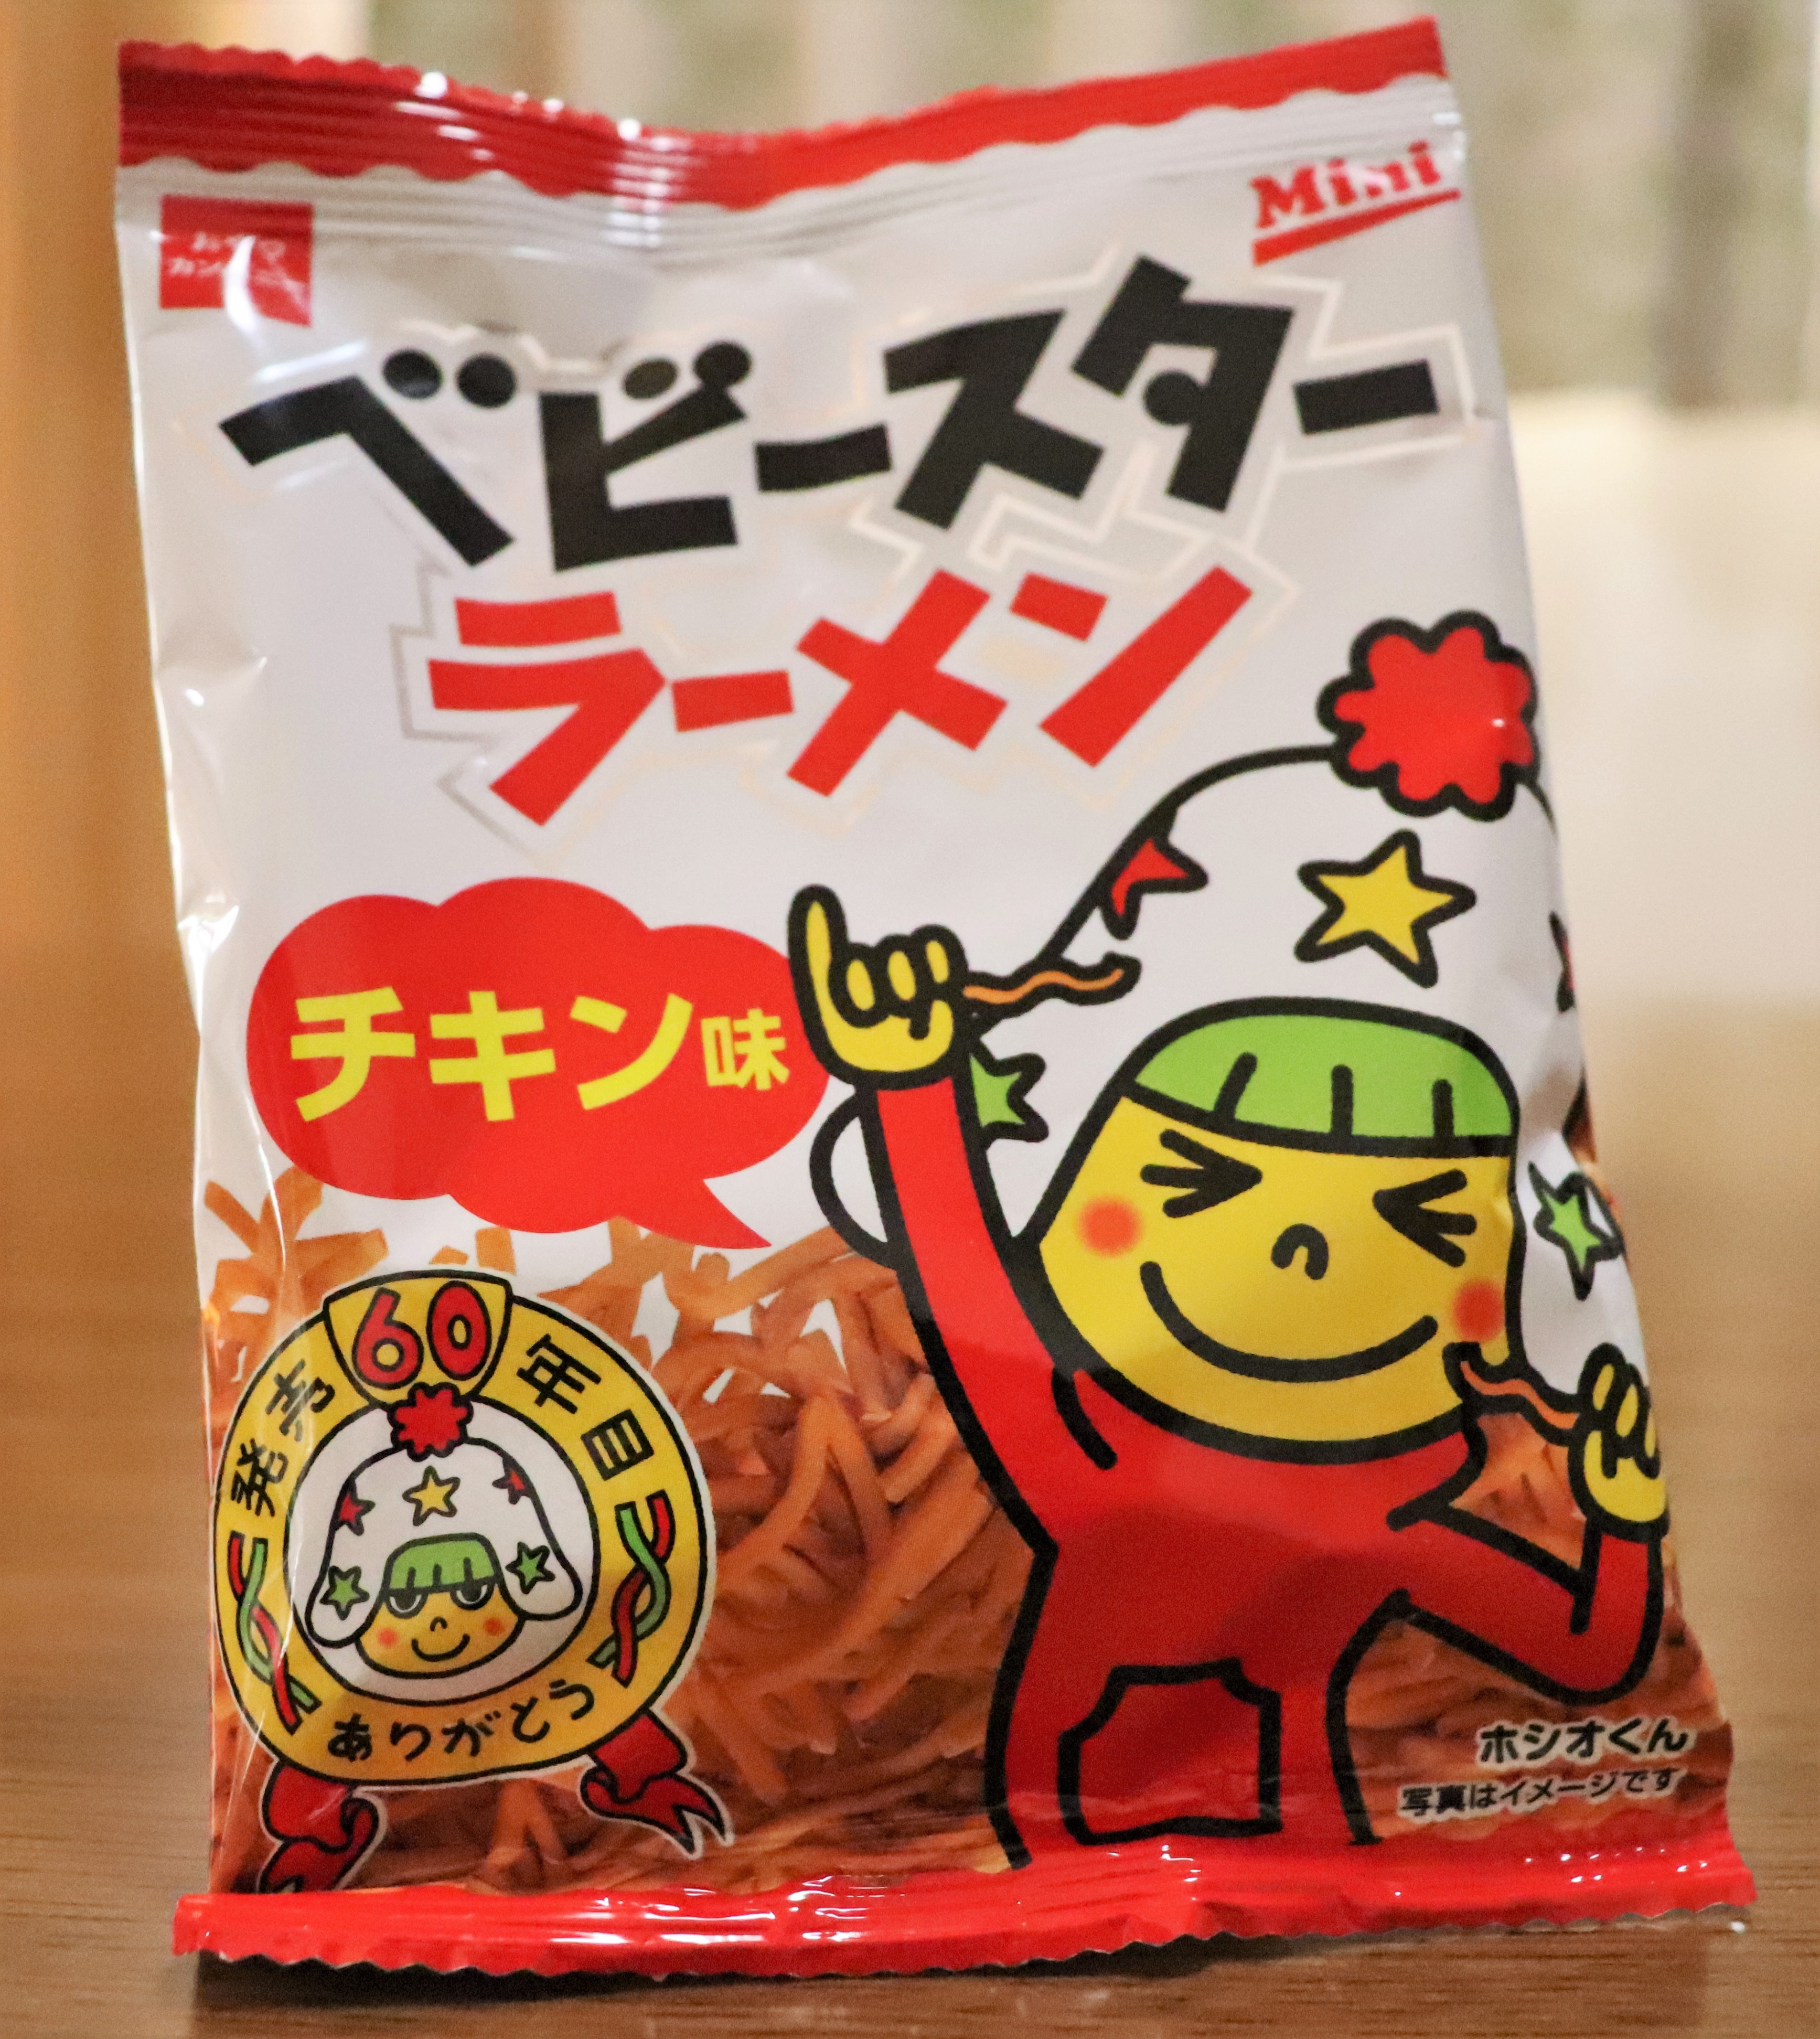 small bag of the dagashi baby star ramen